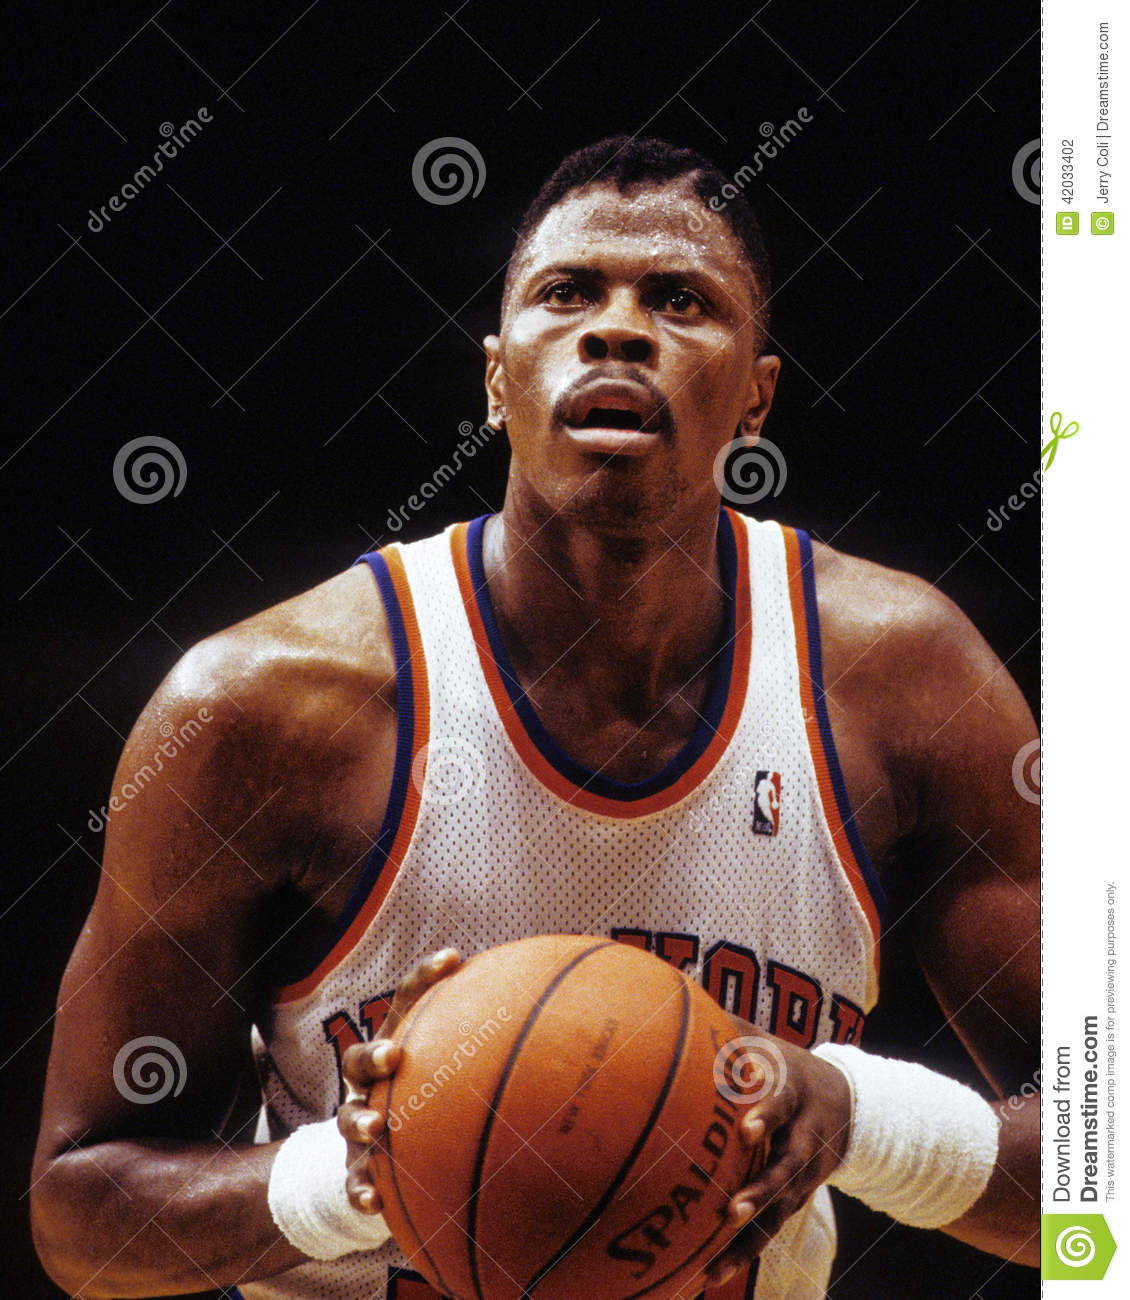 Patrick Ewing New York Knicks